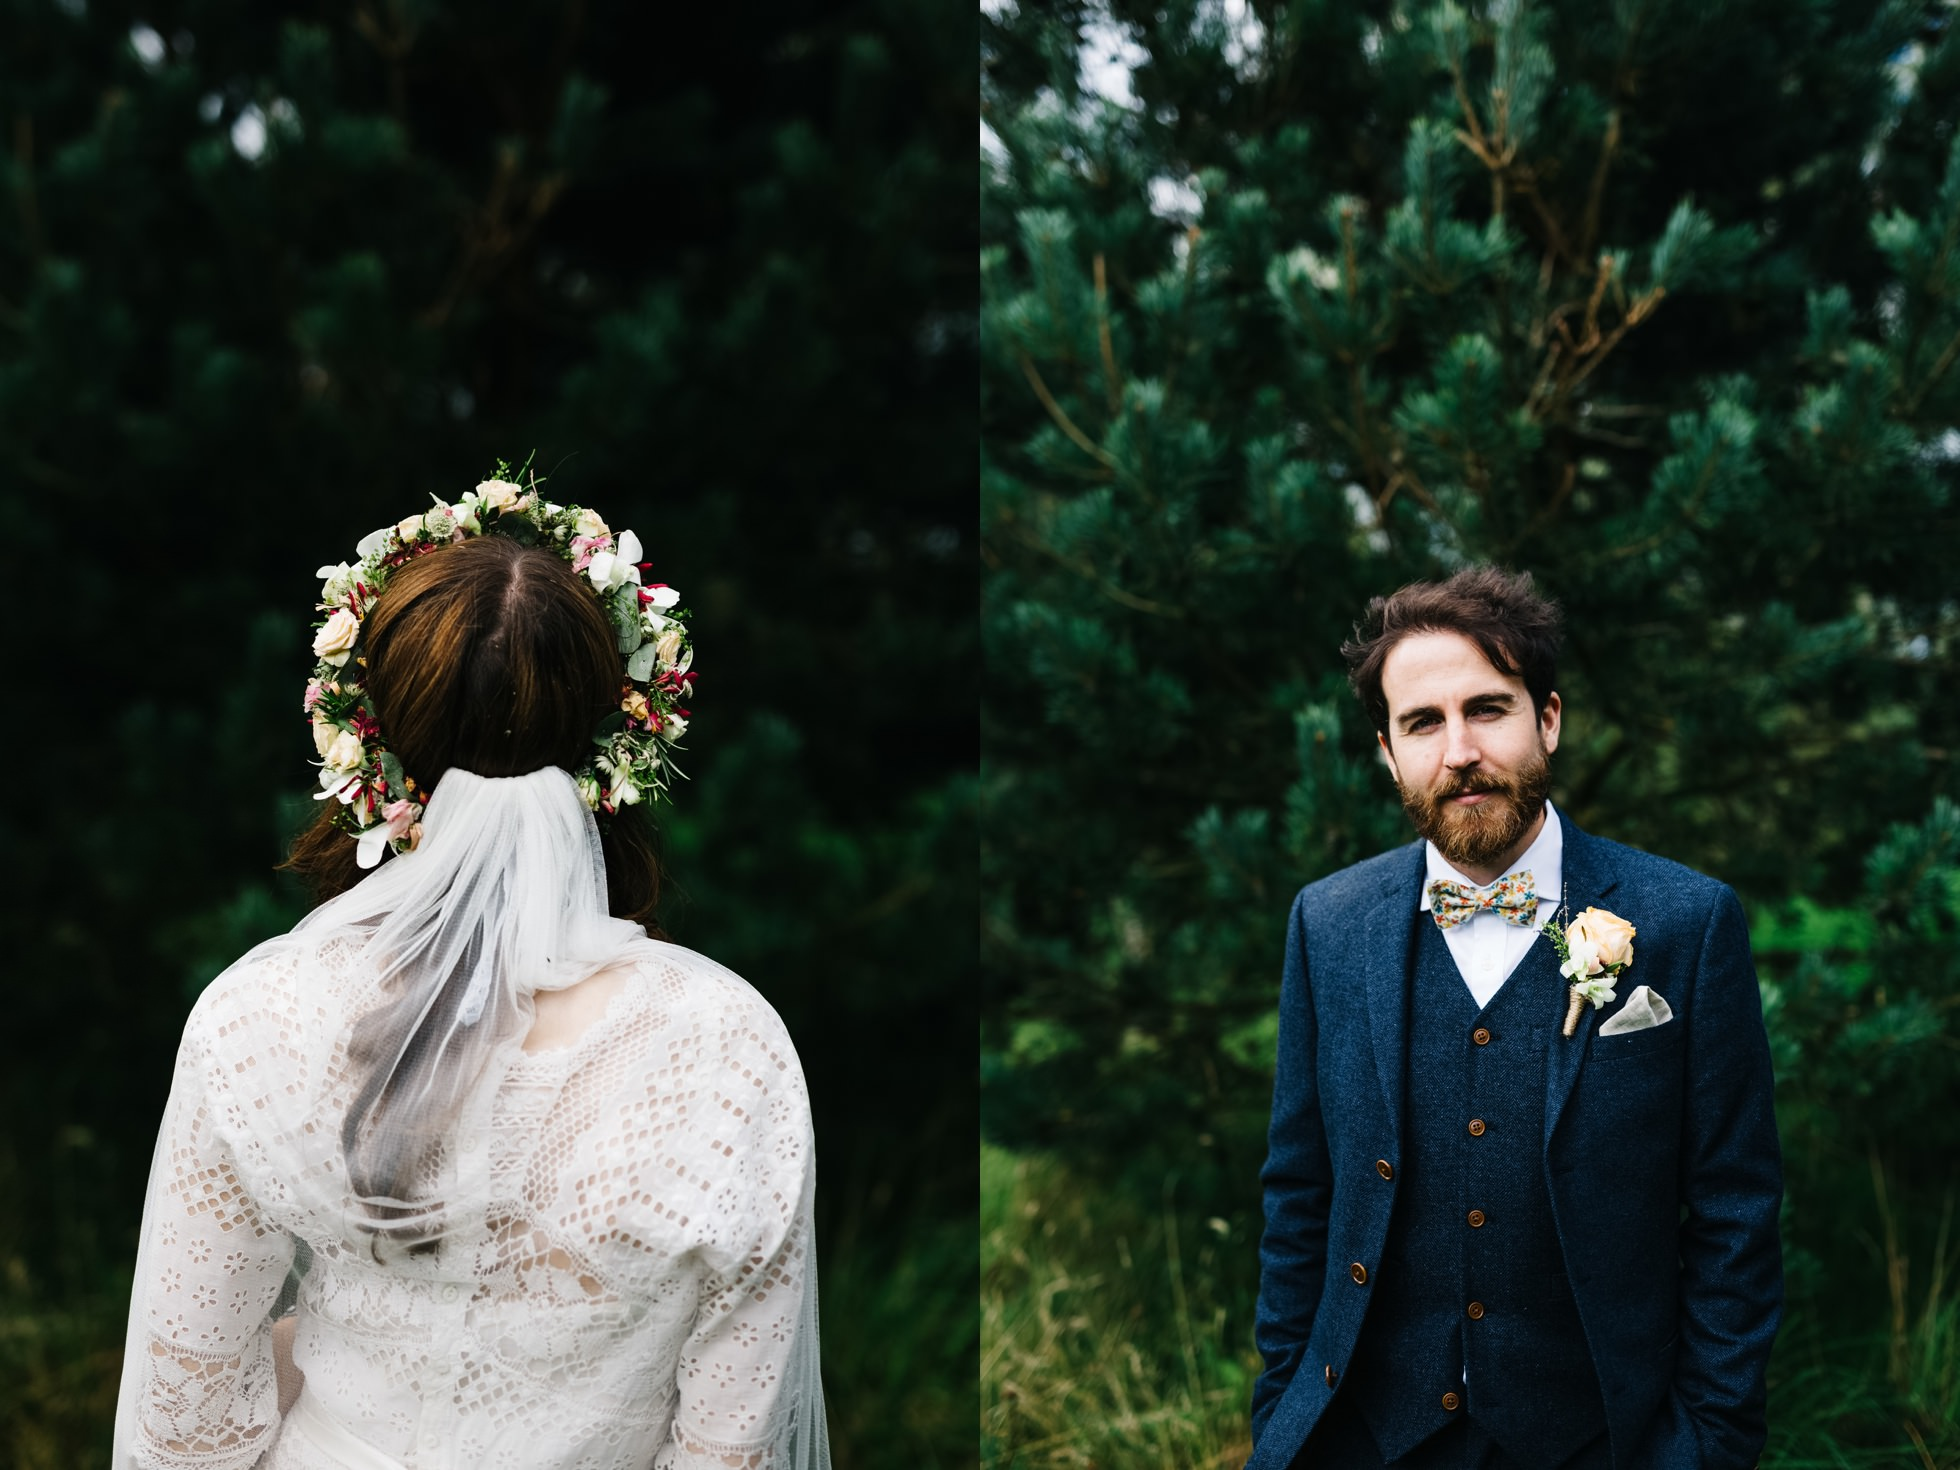 wedding photographer northern ireland, flower crown and bow tie